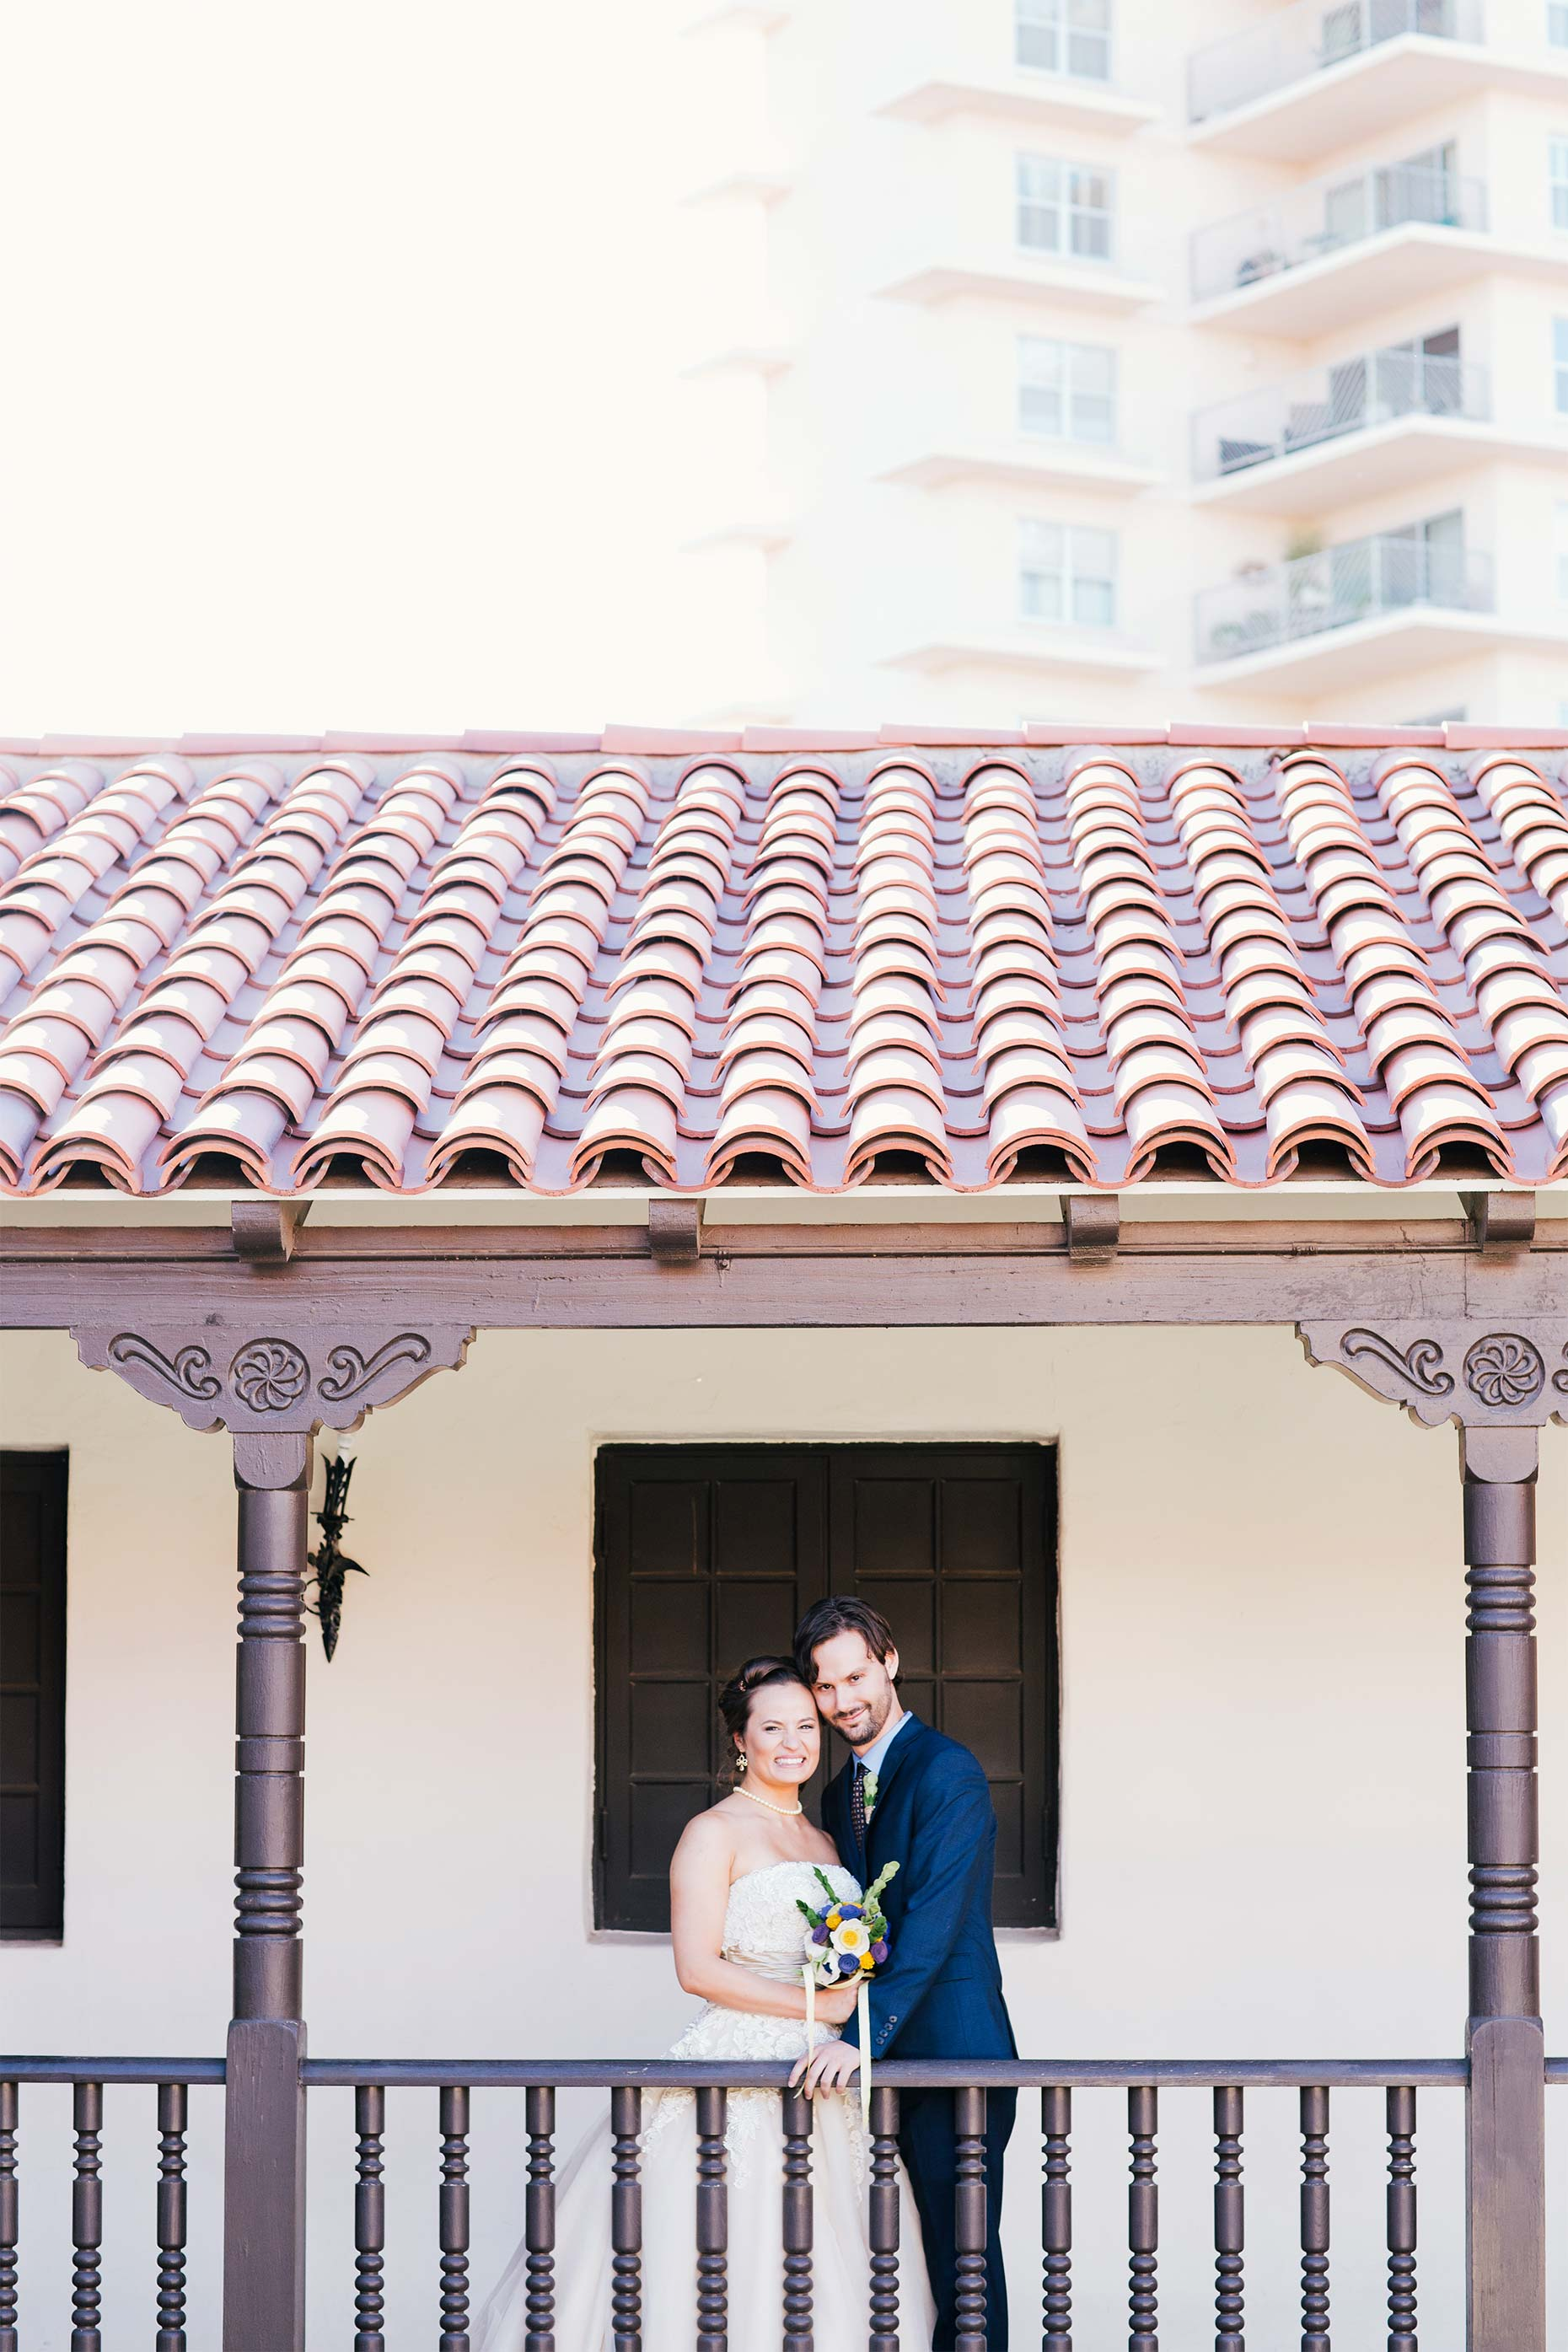 destination wedding Pheonix AZ omaha wedding photographer011